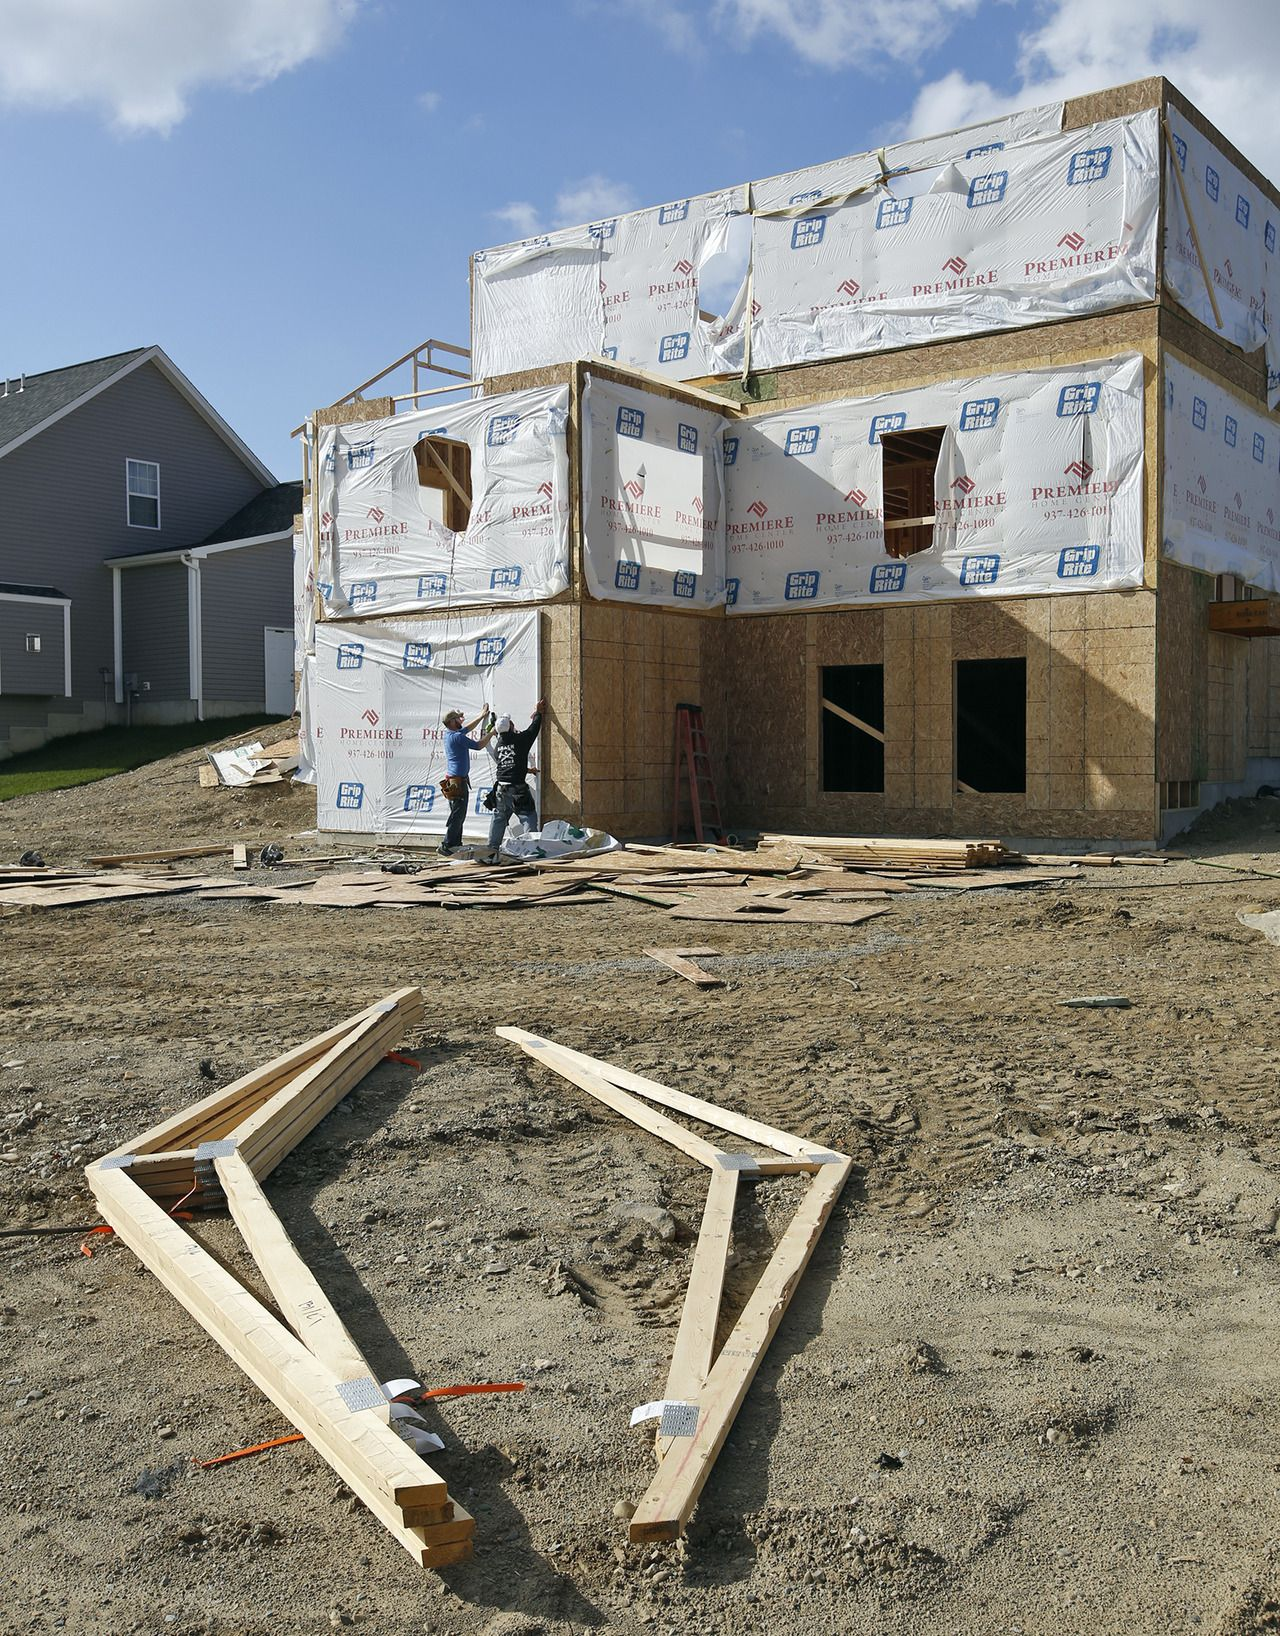 This is great news for Dayton, Ohio New Home Builders